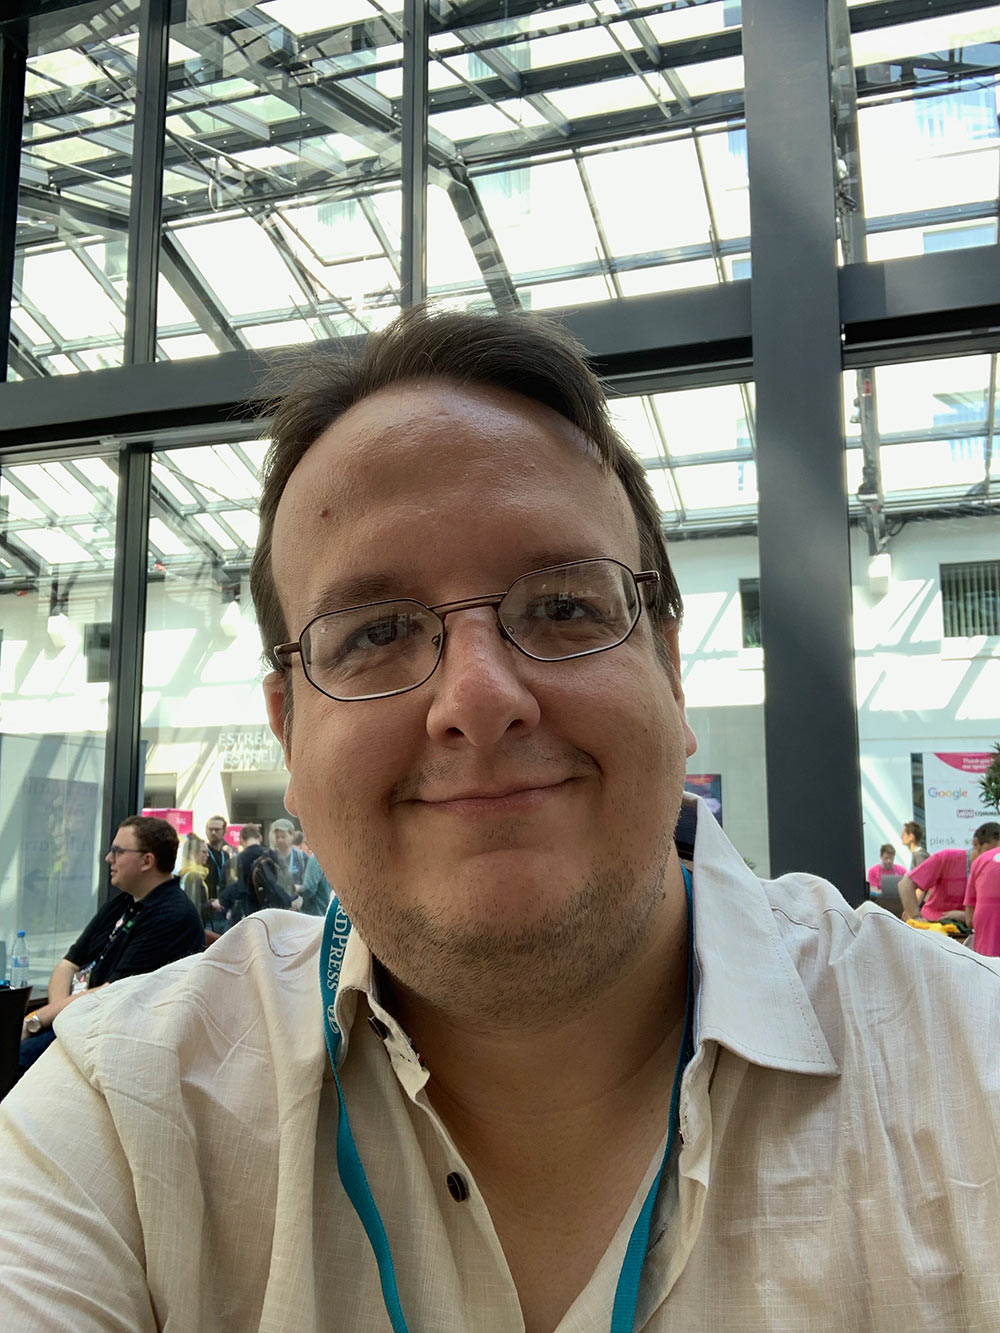 wceu 2019 day4 00 - WordCamp Europe 2019 - WordPress Konferenz – Tag 4 meines #InfluencerReisli